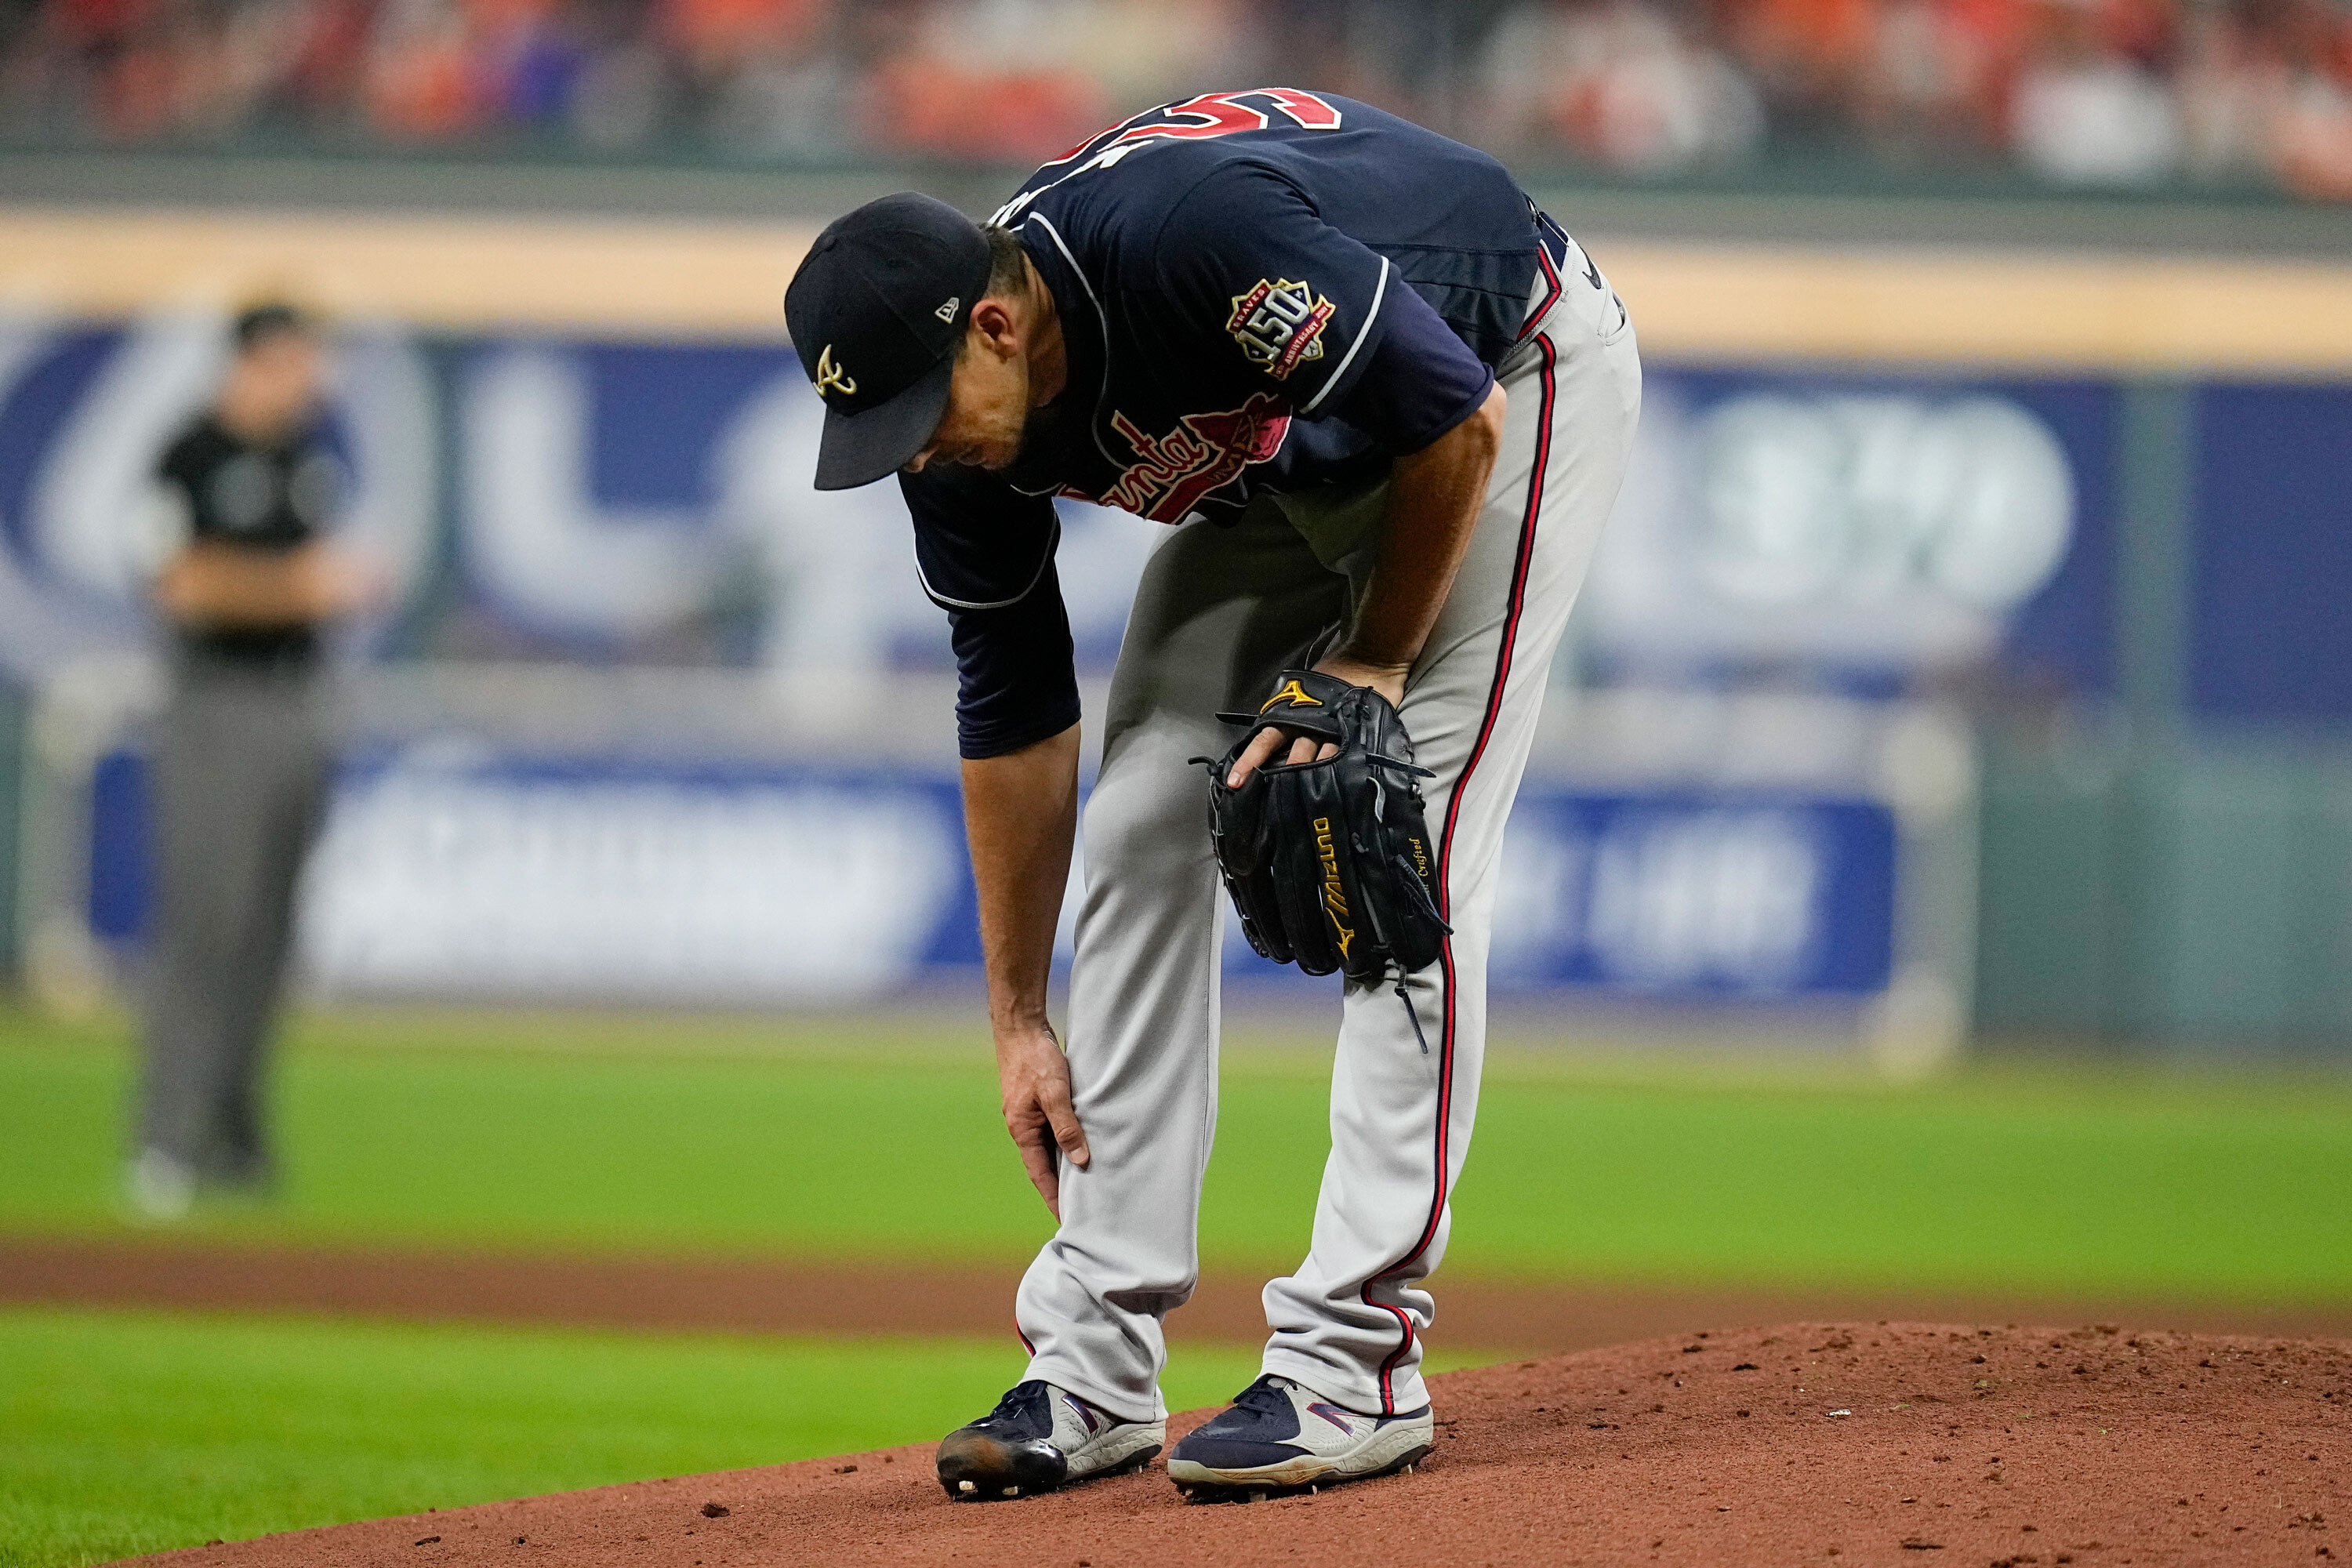 Braves pitcher Charlie Morton fractures bone in his leg, leaves World Series game in third inning